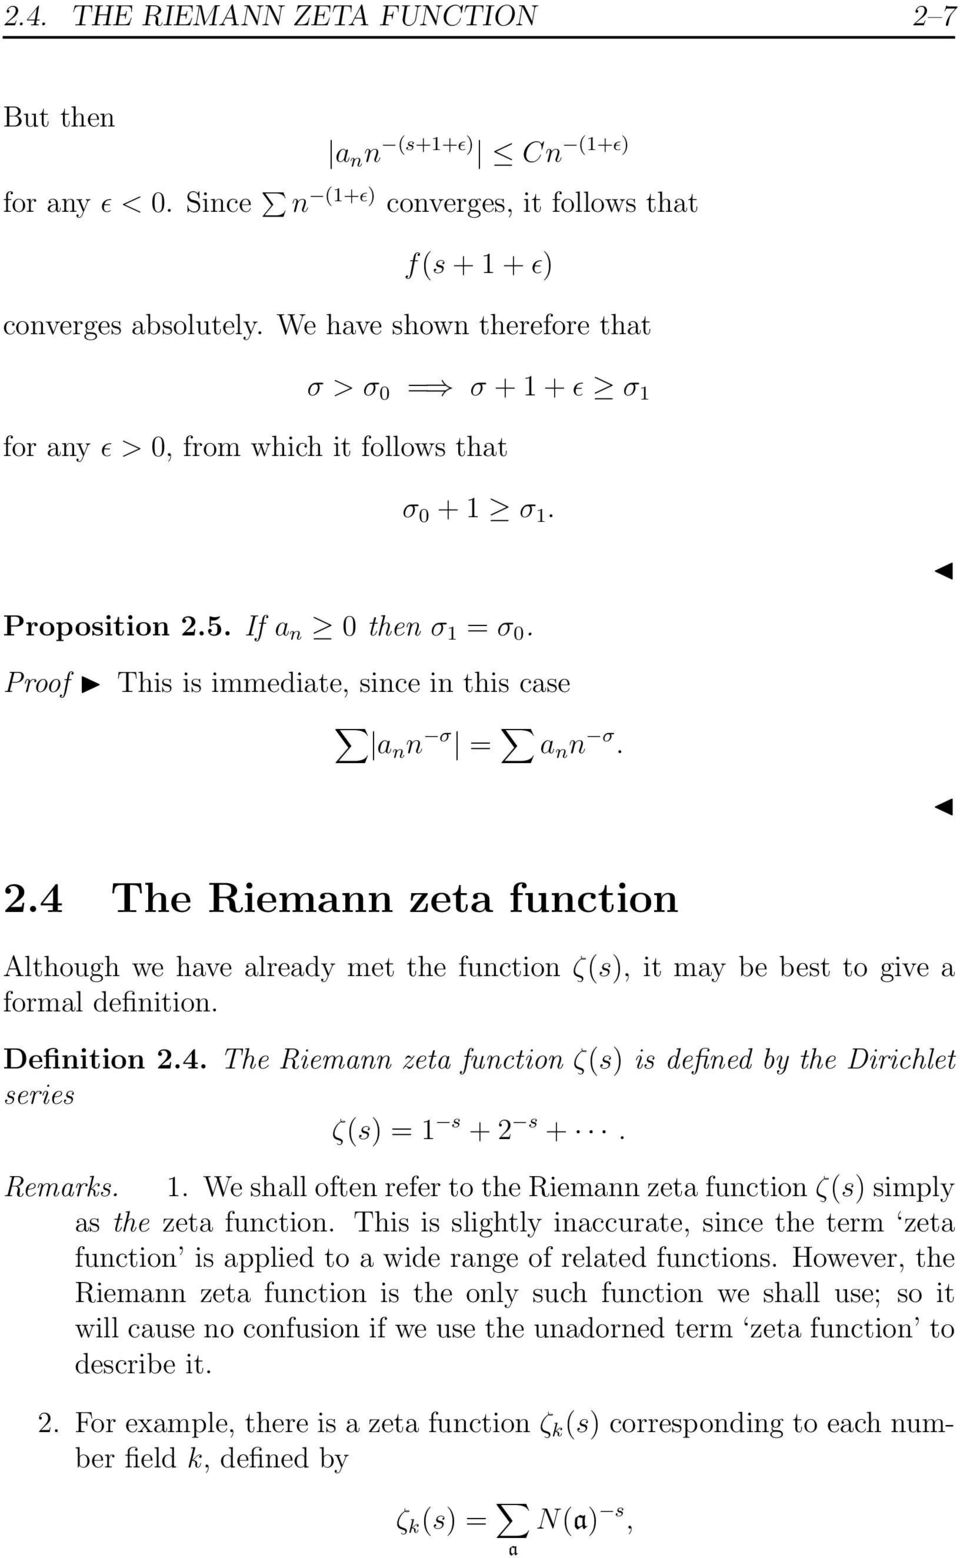 Proof This is immediate, since in this case an n σ = a n n σ. 2.4 The Riemann zeta function Although we have already met the function ζ(s), it may be best to give a formal definition. Definition 2.4. The Riemann zeta function ζ(s) is defined by the Dirichlet series ζ(s) = s + 2 s +.